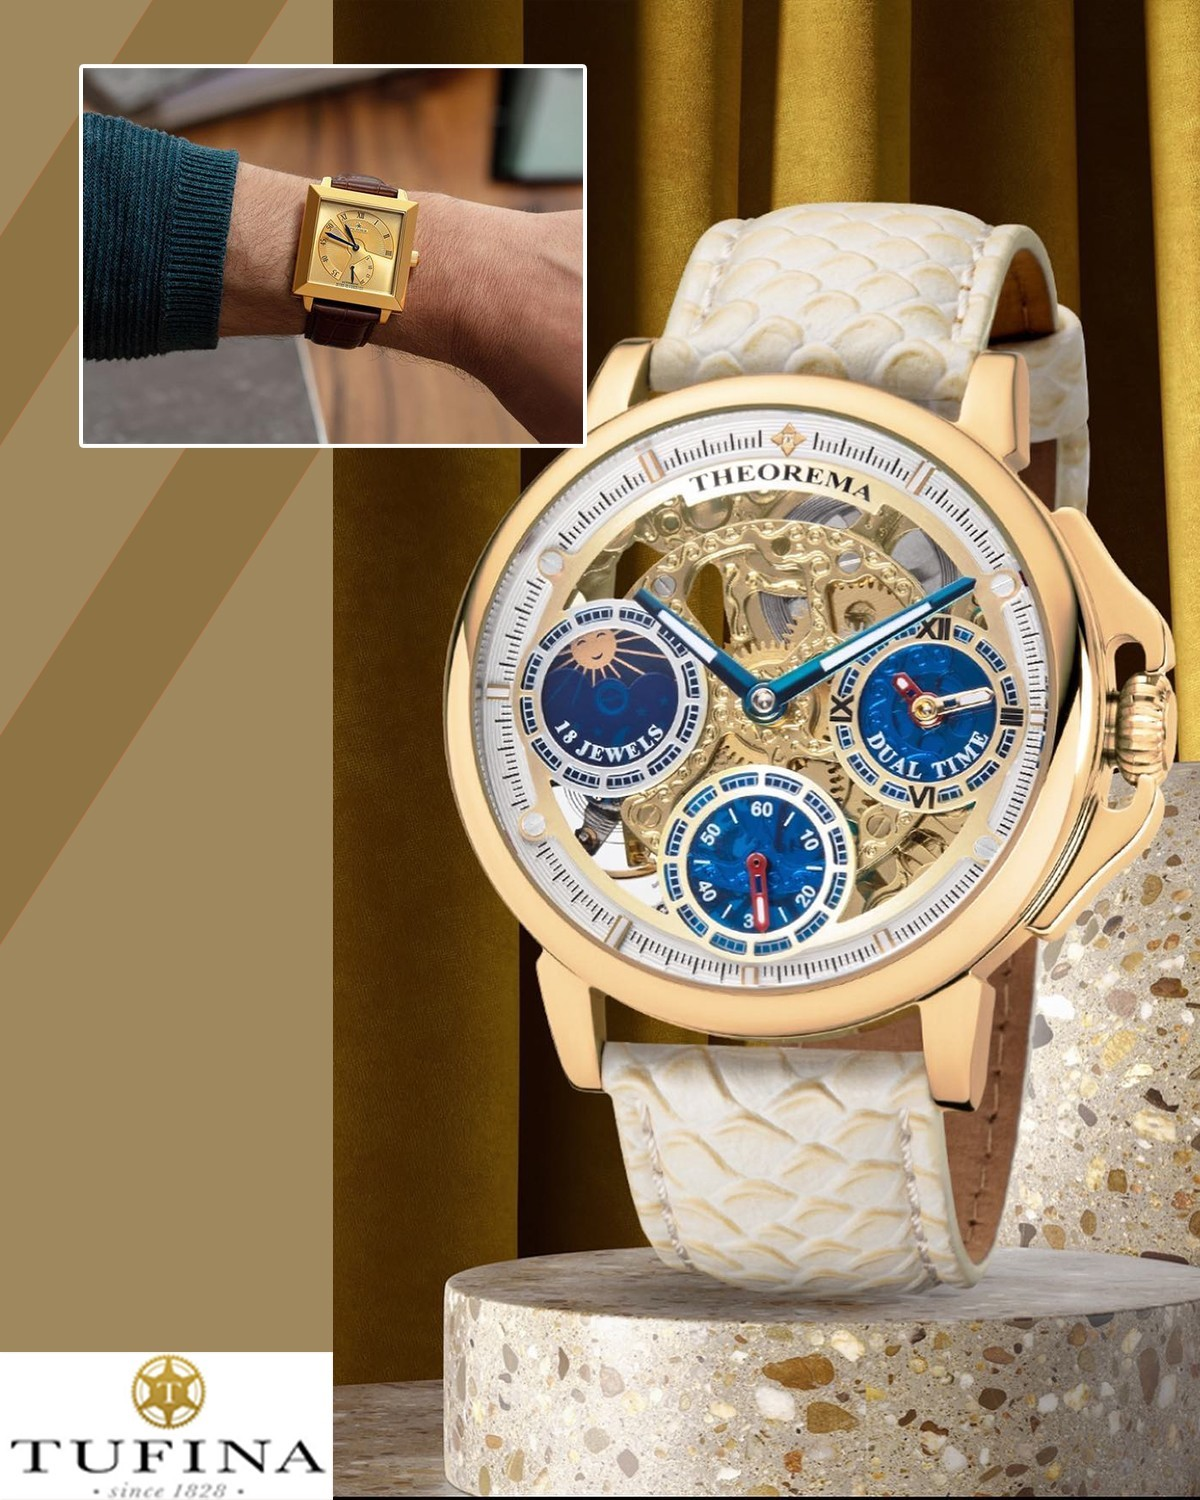 Affordable Luxury German Watch Brands from Tufina